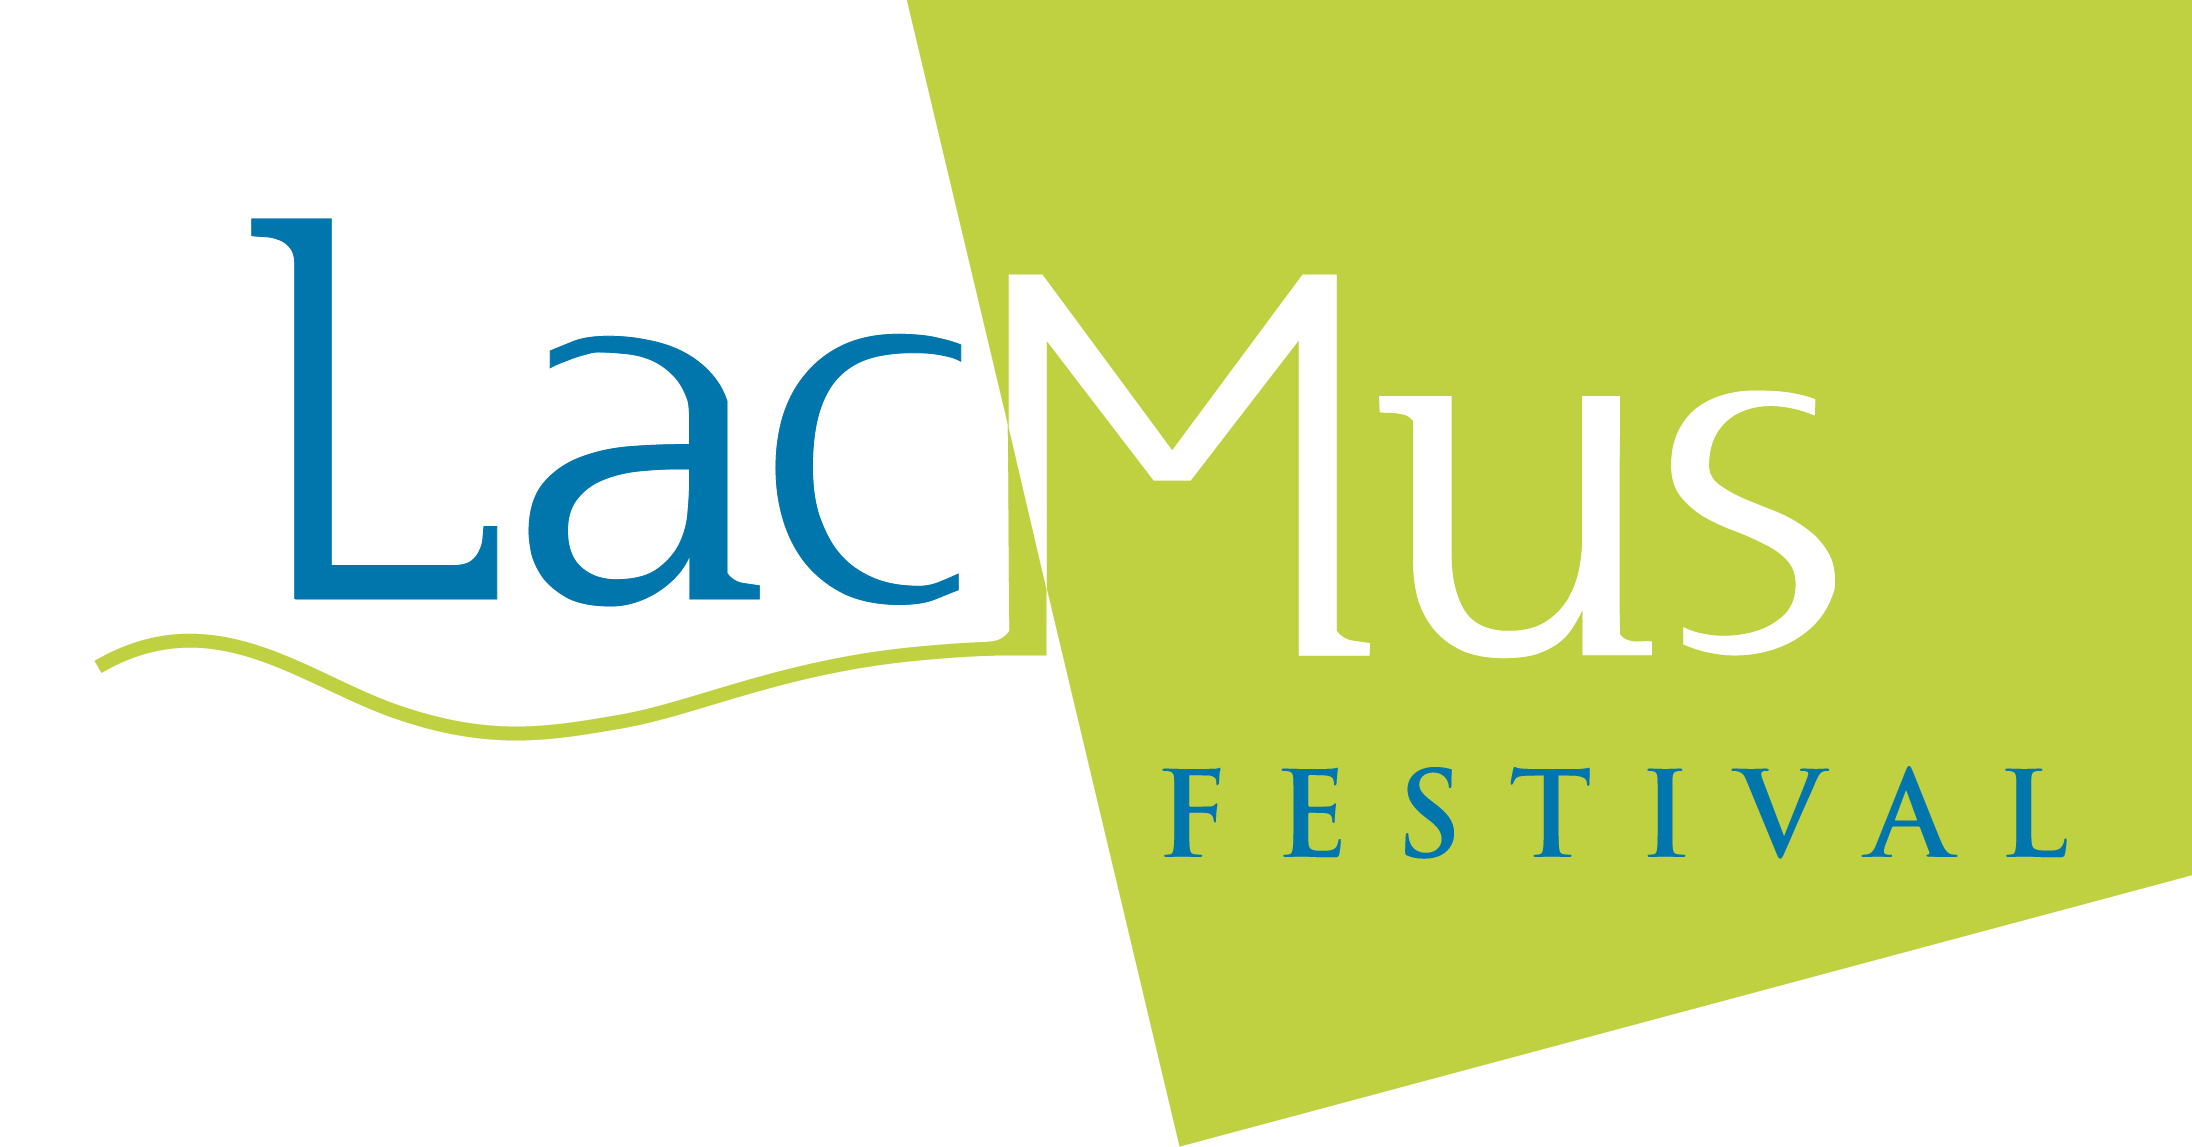 LacMus Festival - Lake Como – Tremezzina – International Music Festival